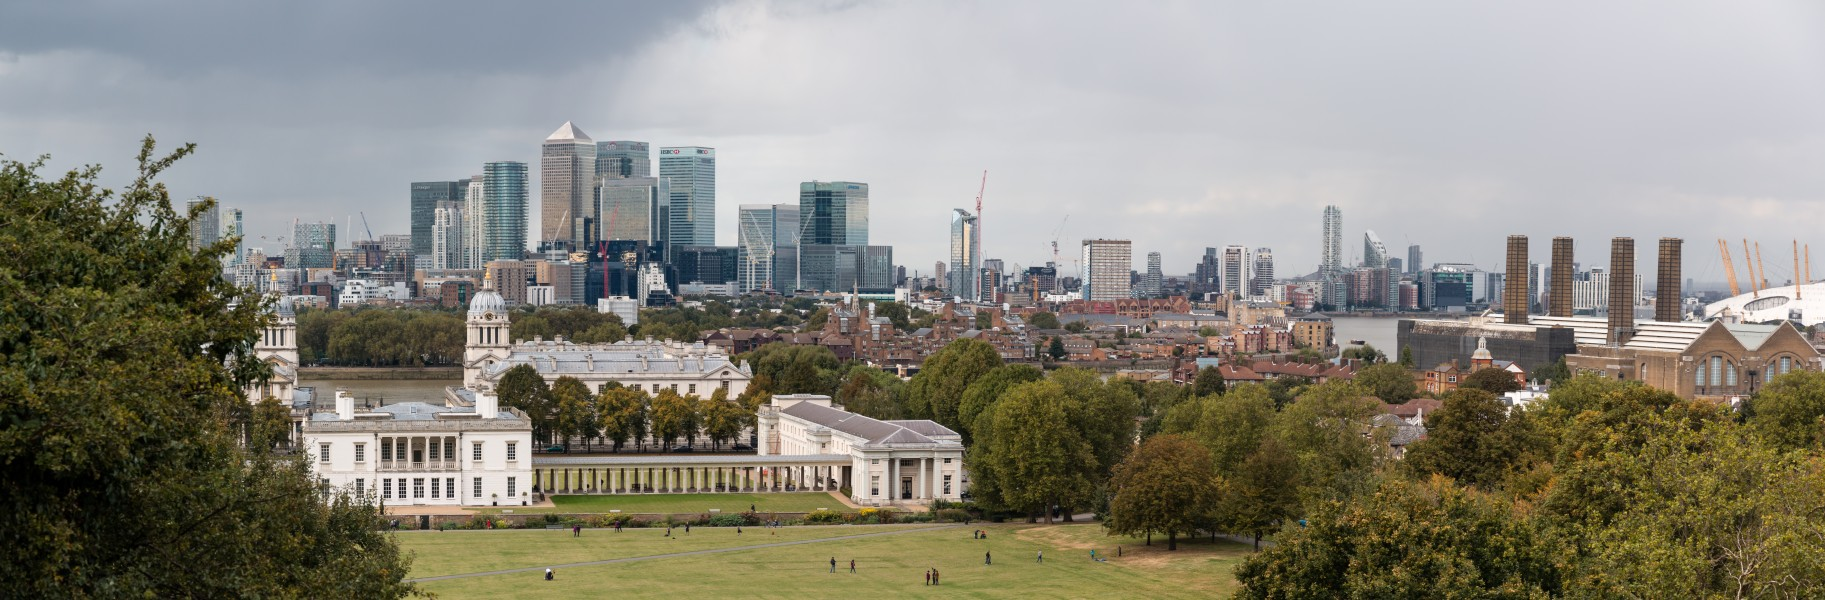 London, Greenwich, Blick vom Hügel des Royal Greenwich Observatory -- 2016 -- 4736-8